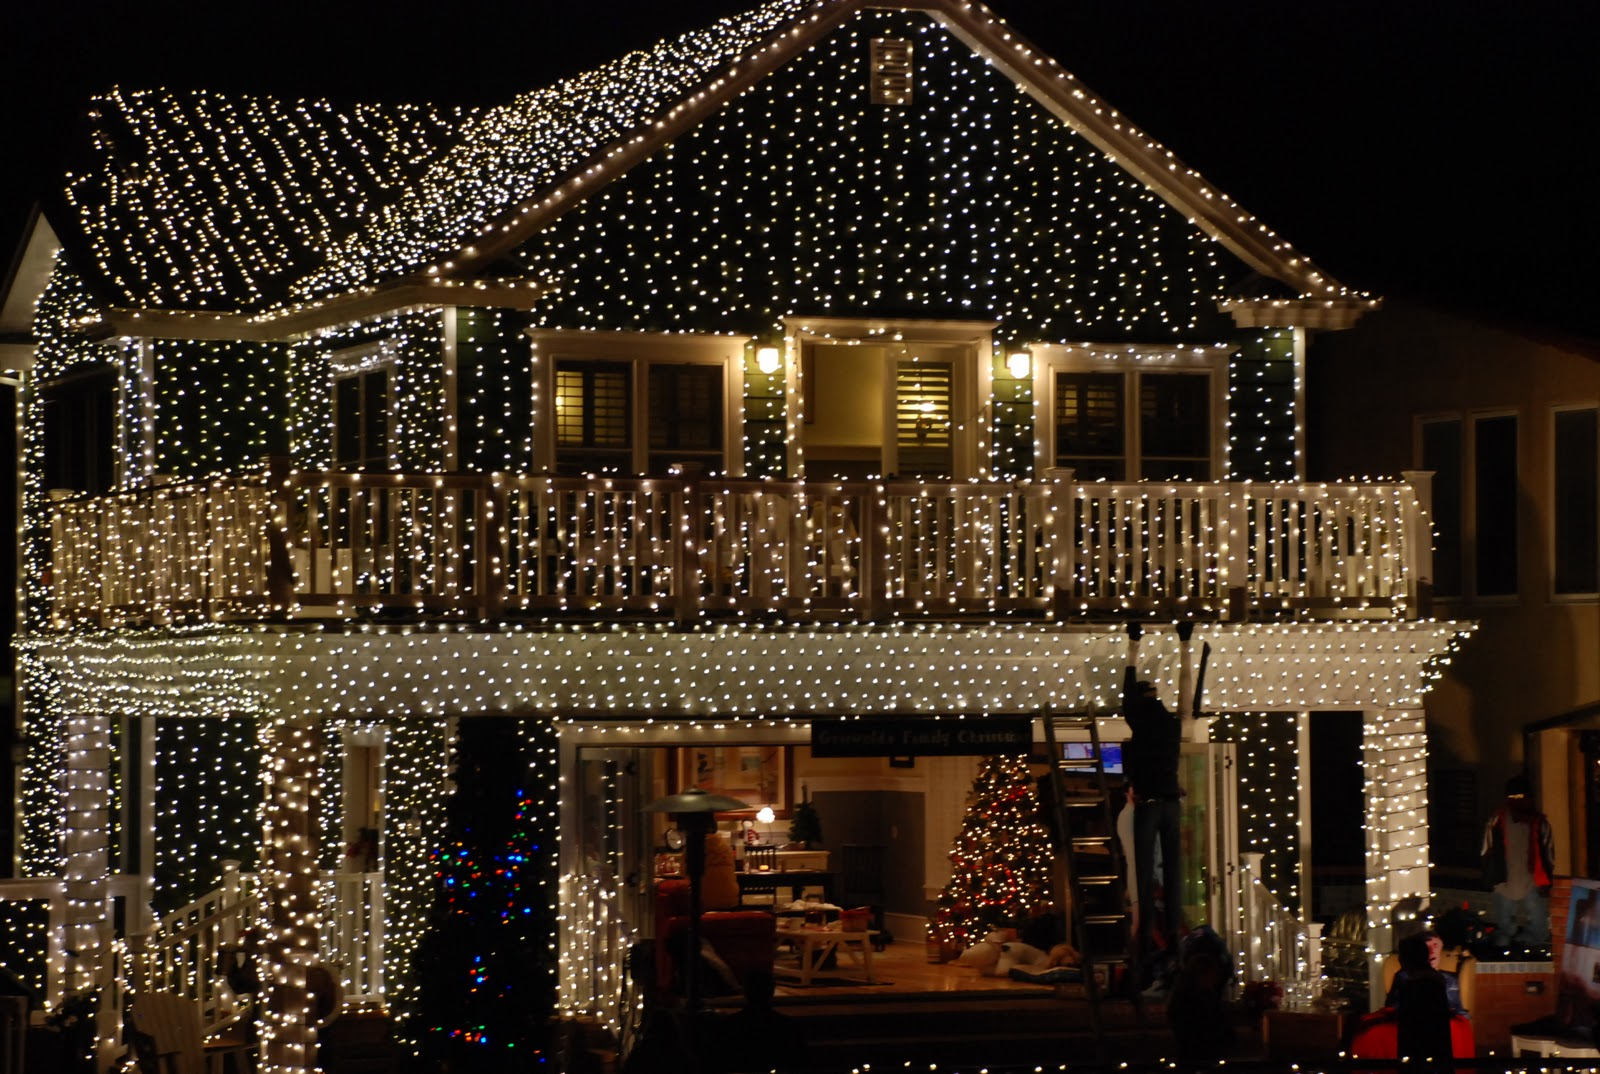 This american home deck the halls holiday lights deck the halls holiday lights mozeypictures Gallery